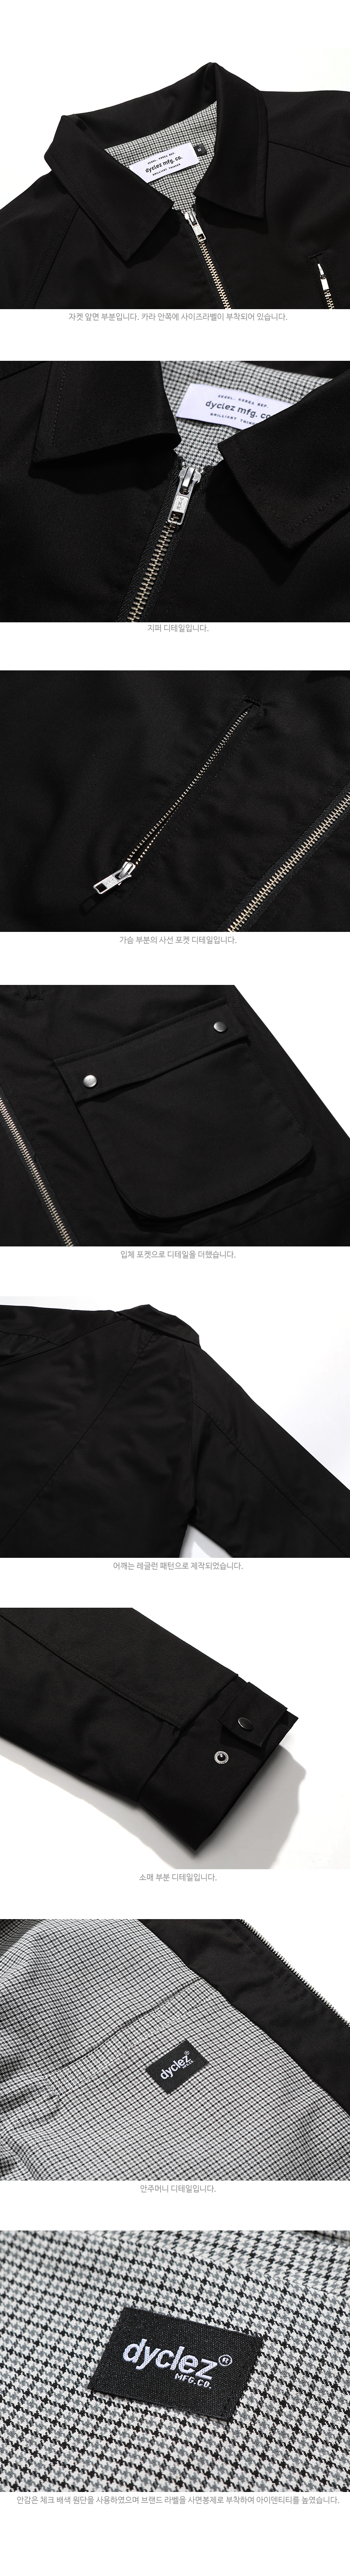 KHOT5083_detail_black_02.jpg